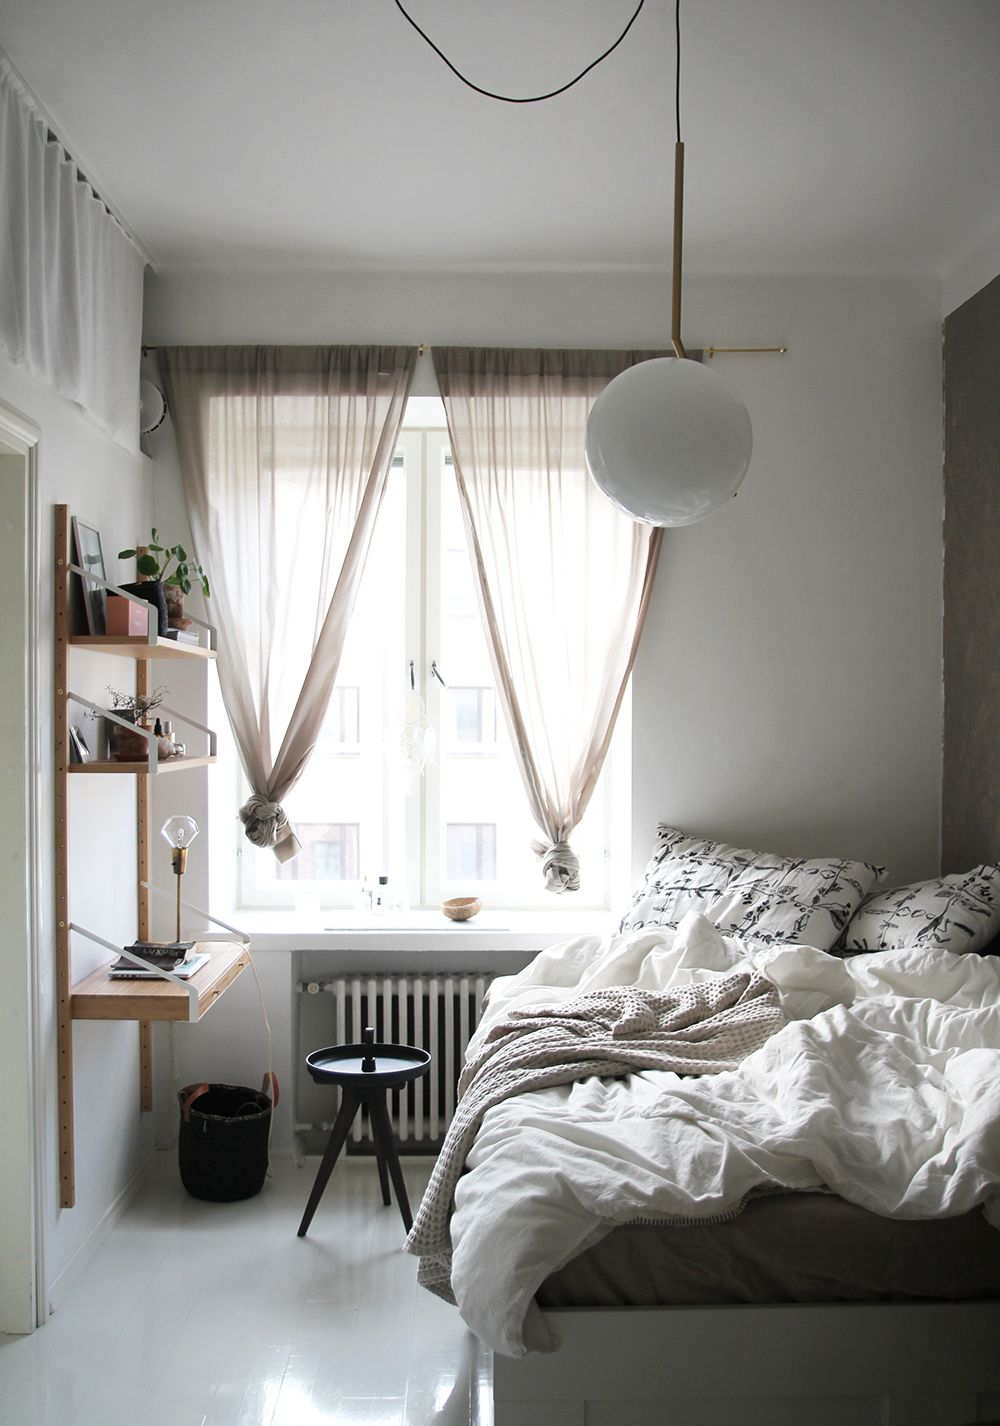 Bedroom Decor Raw Design Blog Bedroom Decor Home Decor Wall